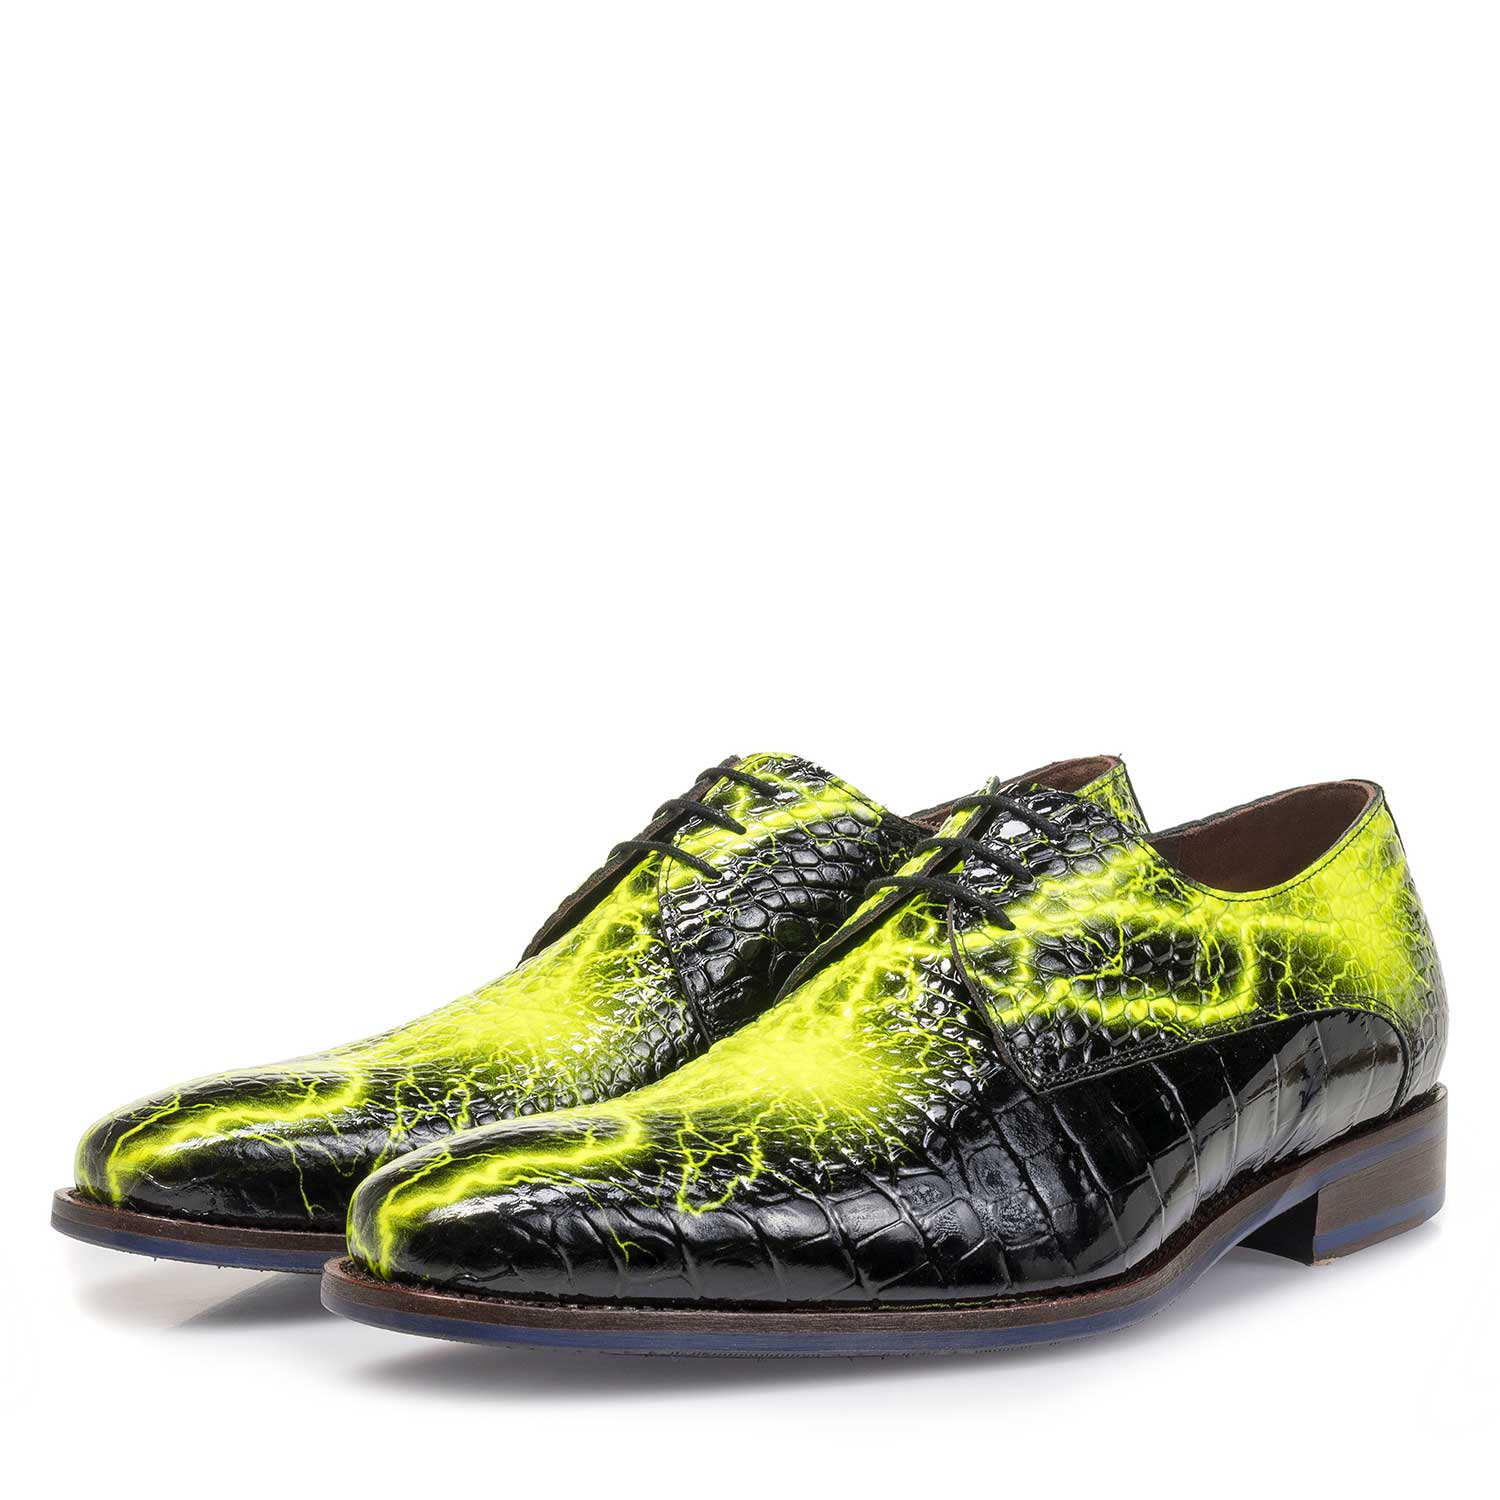 18102/01 - Black premium lace shoe with yellow print